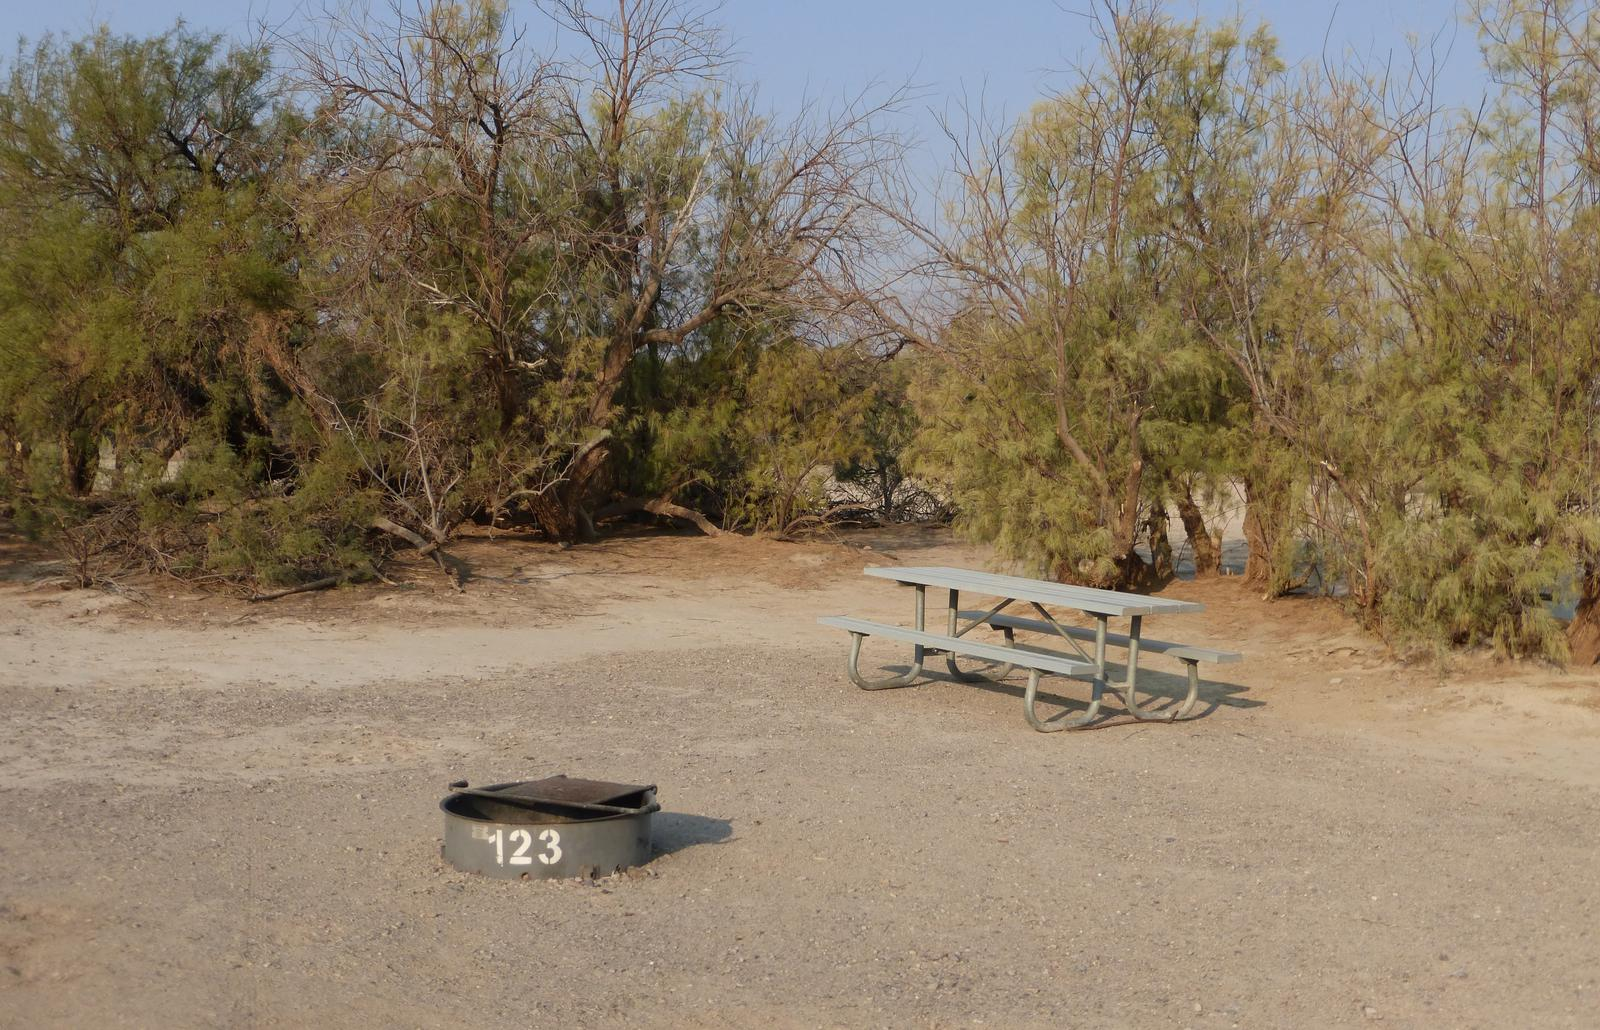 Tent only walk in site #123.  No campervans, RV's, or pop up tents.  One firepit with grate and one picnic table.  No utilities